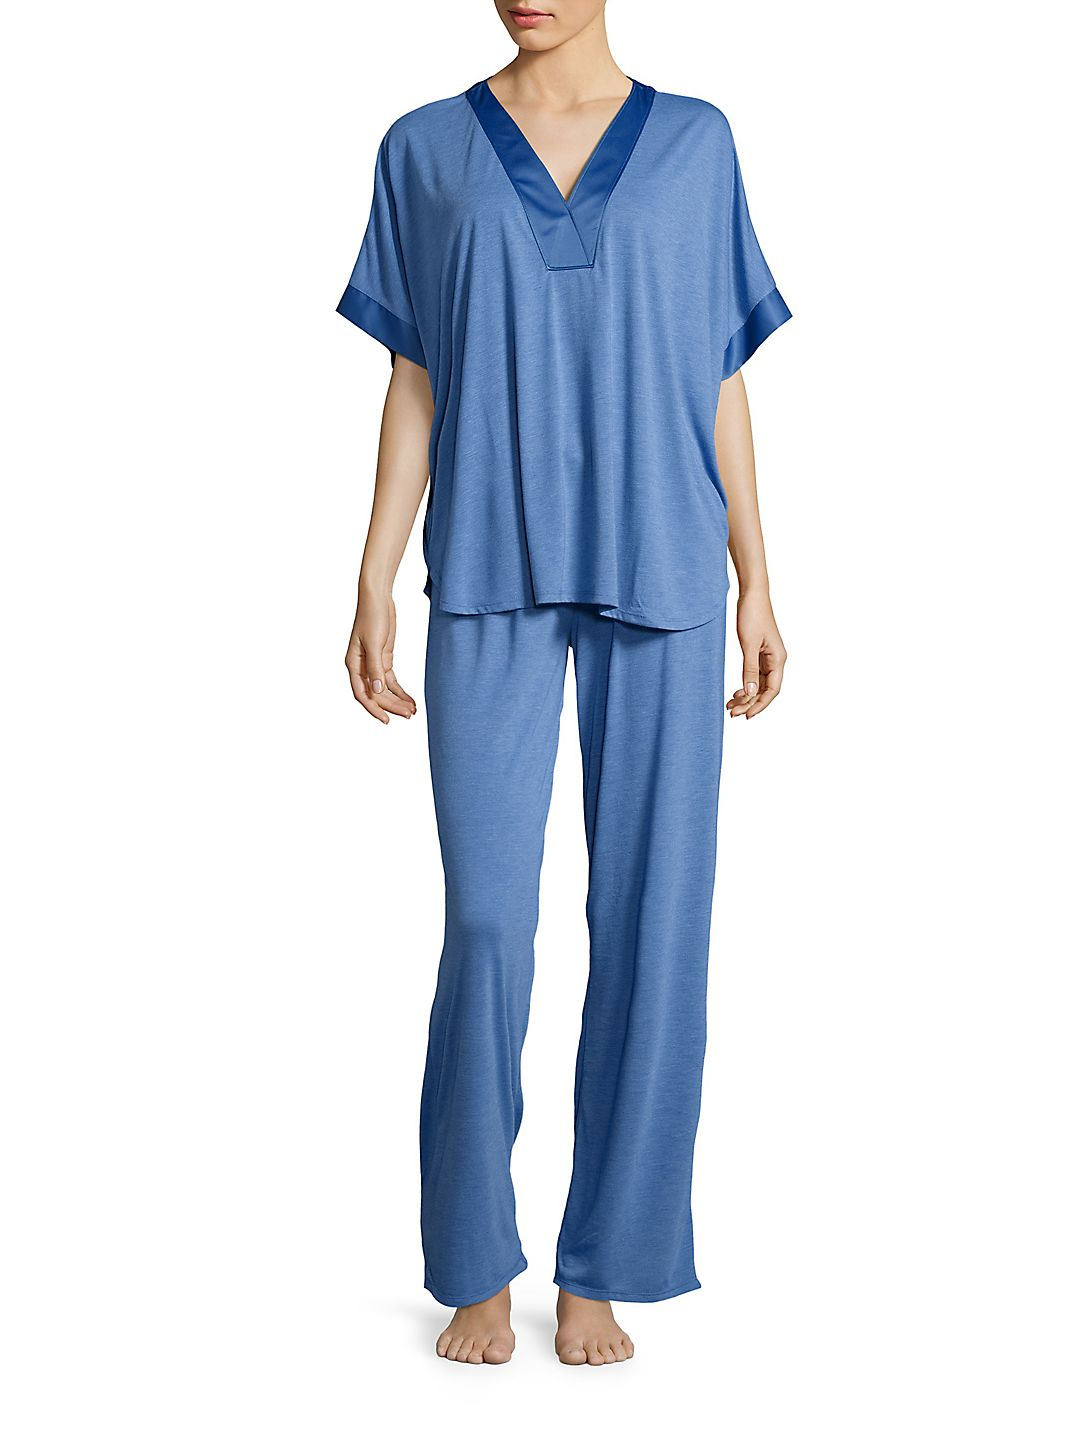 Satin-Trimmed Jersey Knit Pajamas